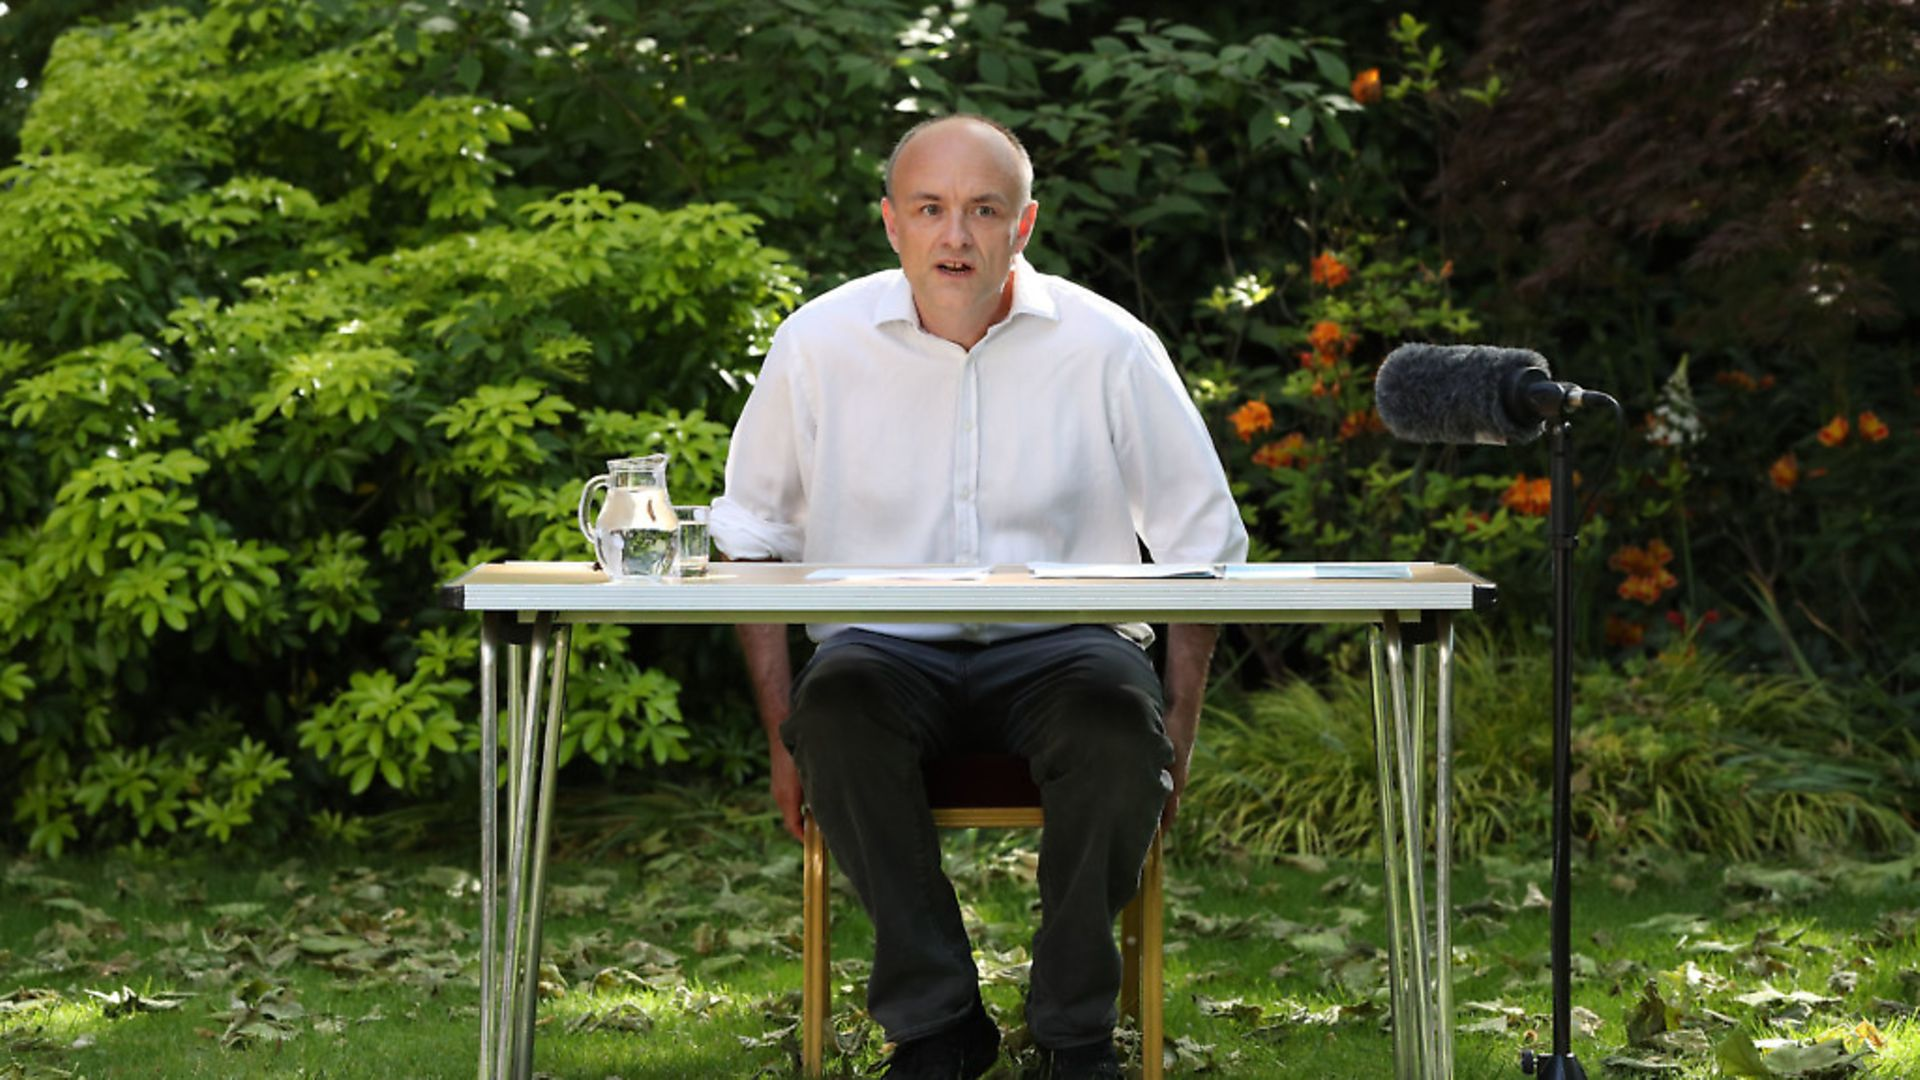 Number 10 special advisor Dominic Cummings speaks as he delivers a statement in the Rose Garden at 10 Downing Street. (Photo by JONATHAN BRADY/POOL/AFP via Getty Images) - Credit: POOL/AFP via Getty Images